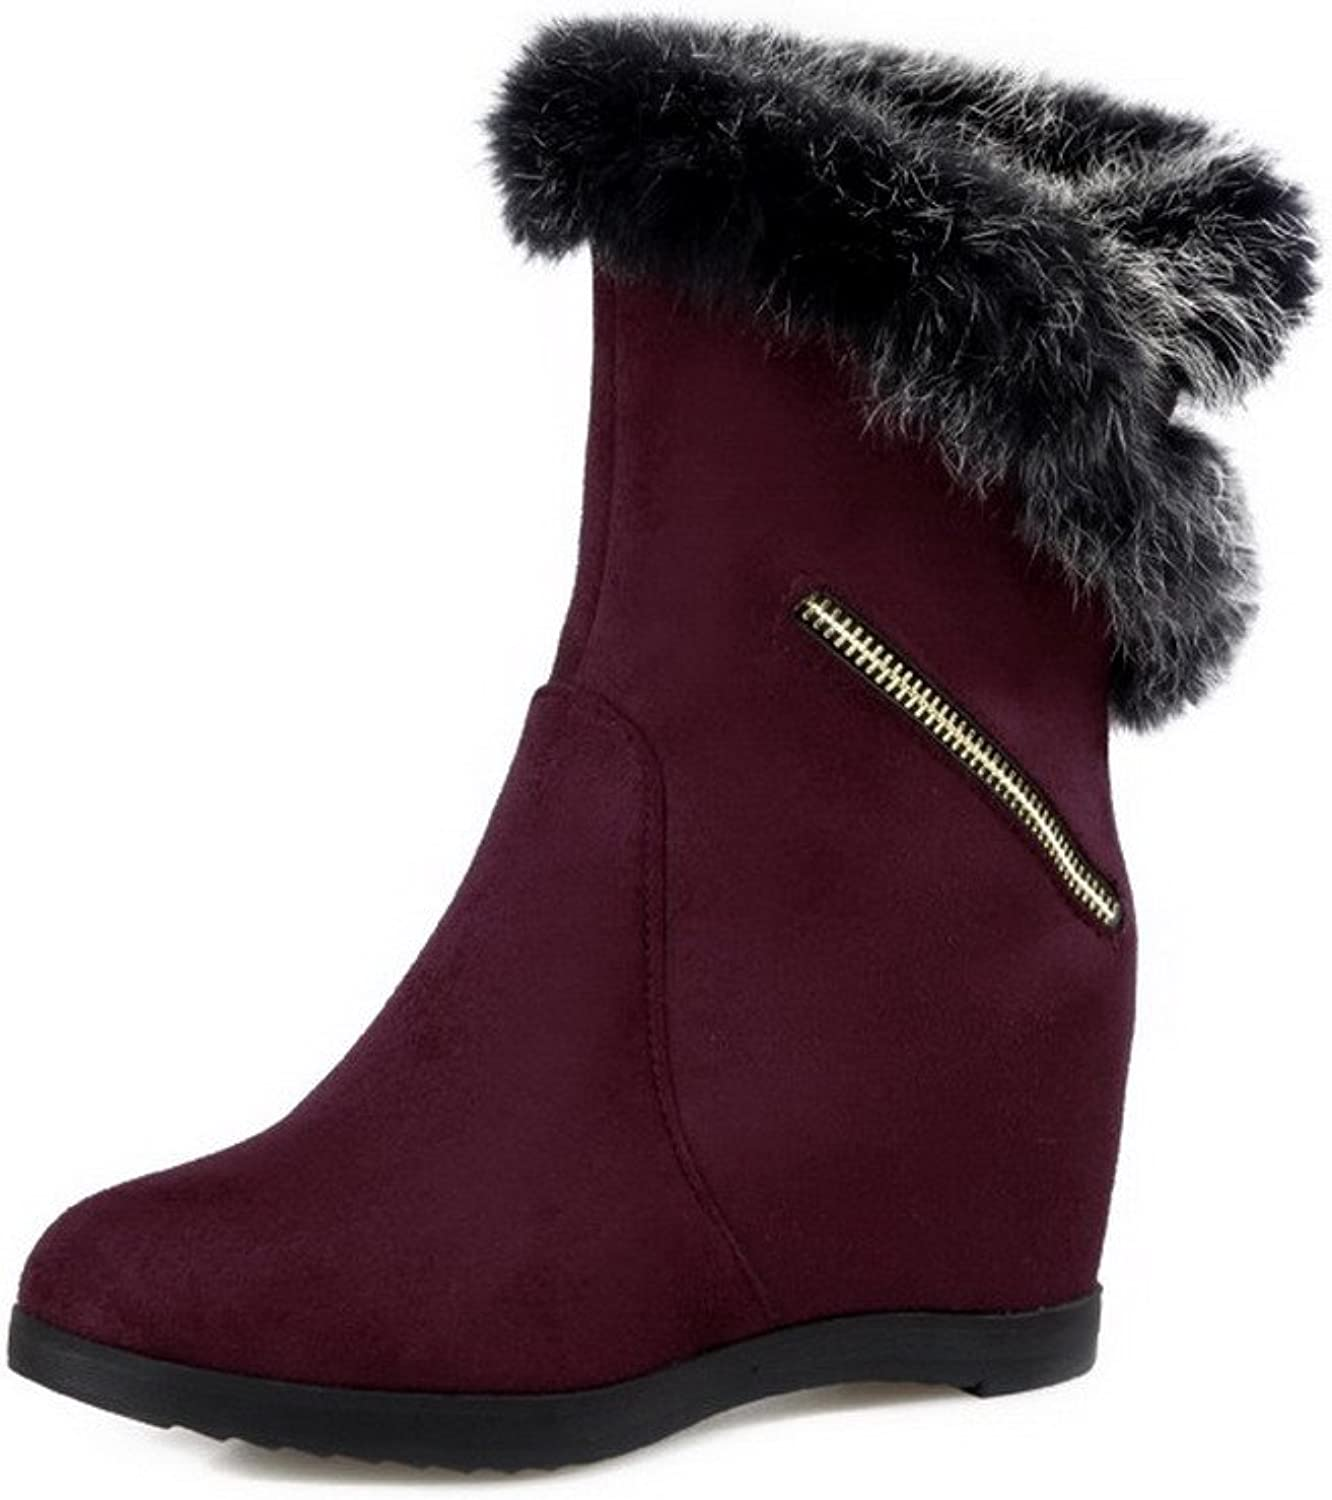 WeenFashion Women's Imitated Suede High-Heels Round-Toe Boots with Wedge and Metal Ornament